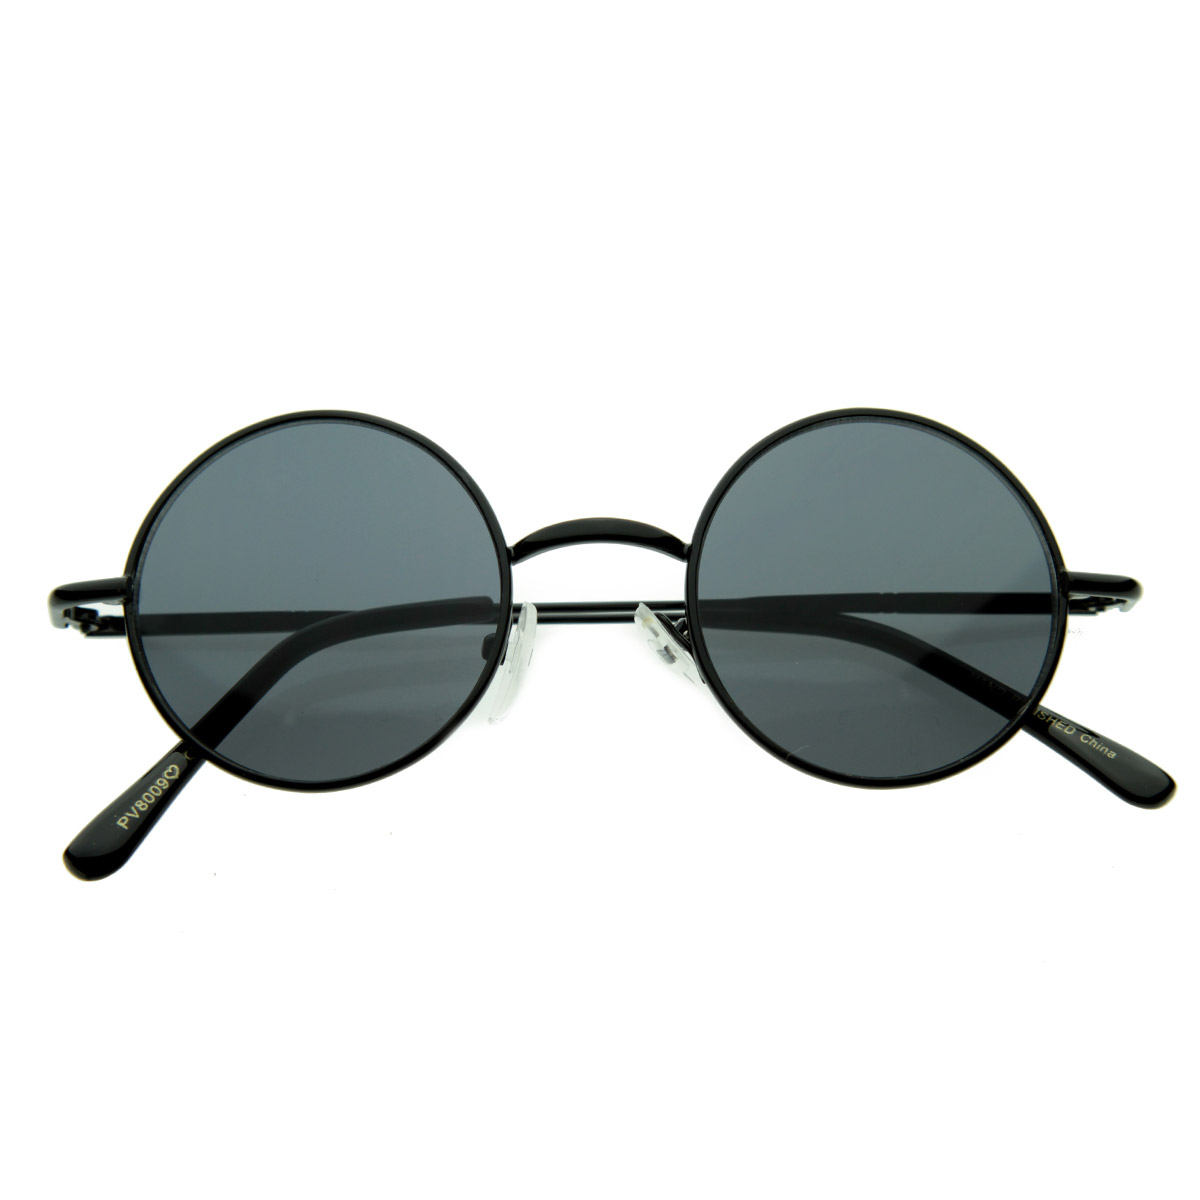 Find great deals on eBay for round shades. Shop with confidence.